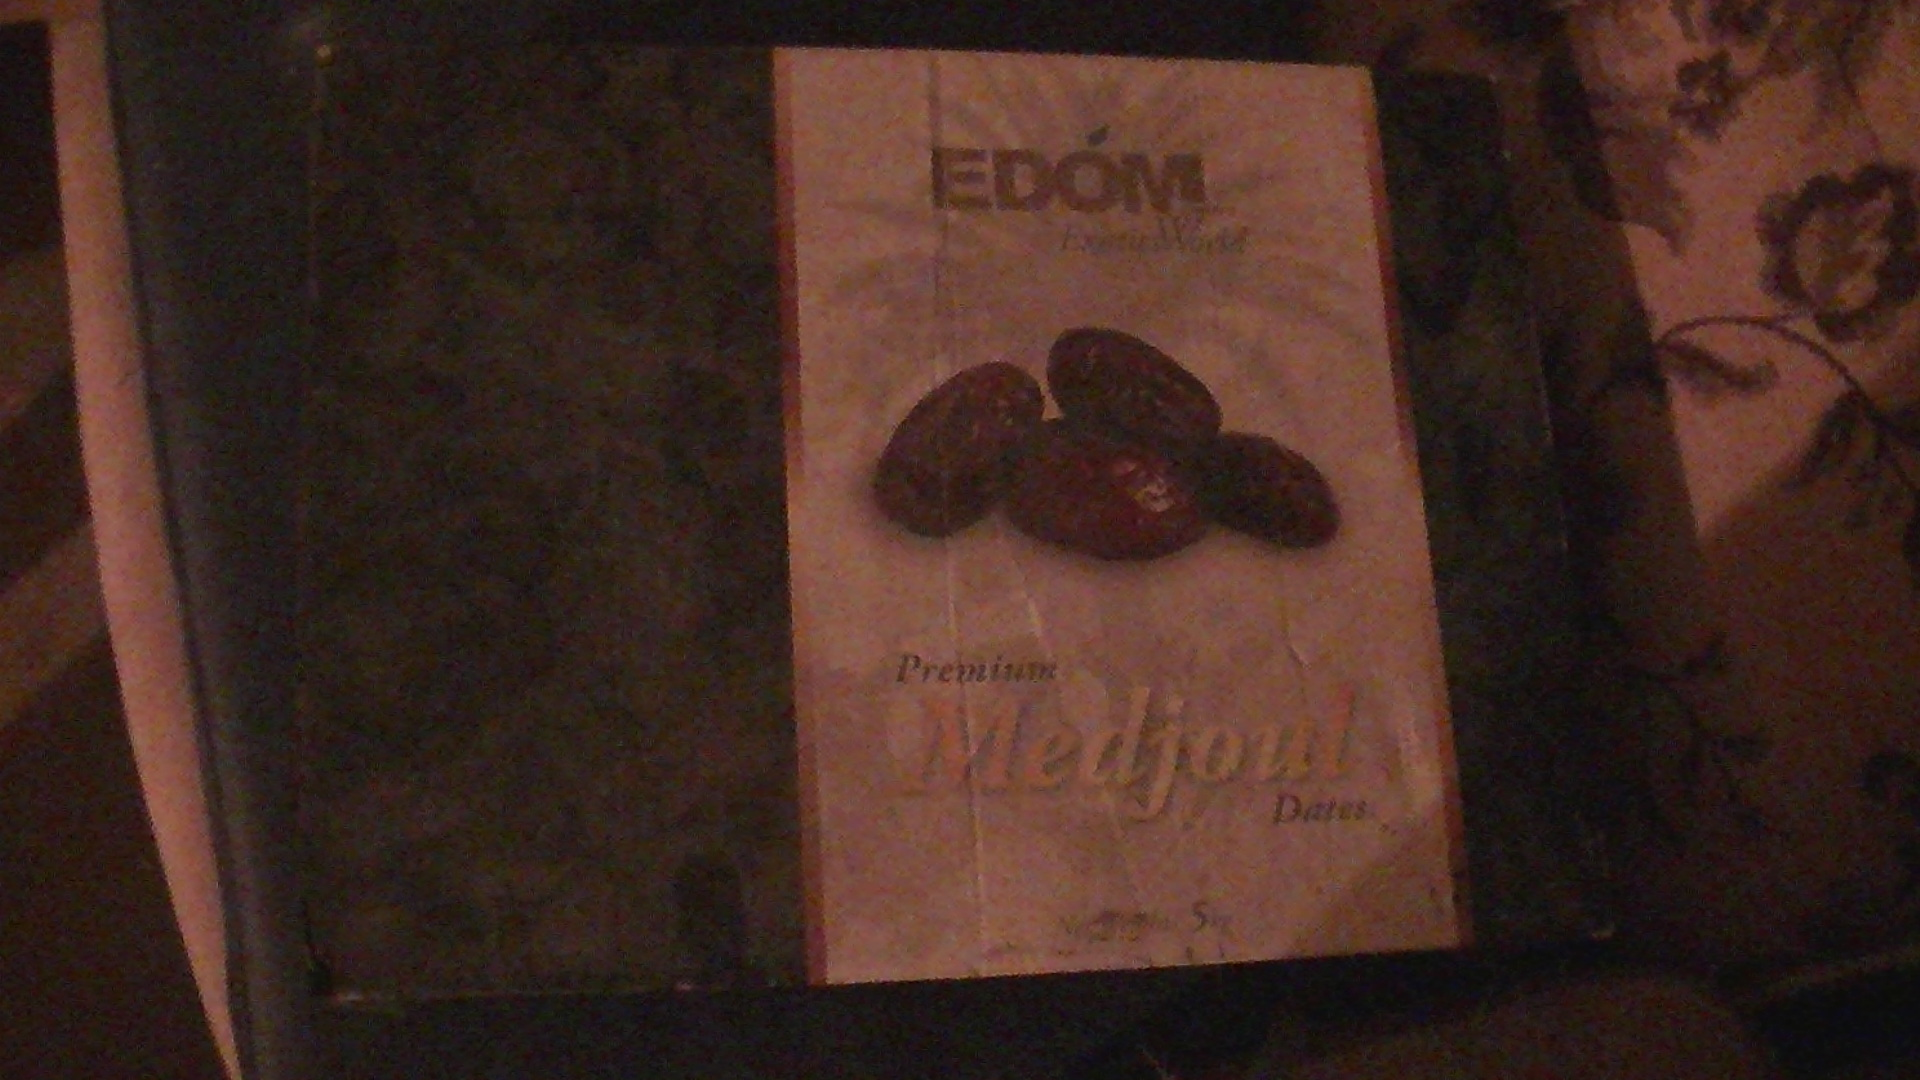 Edom packaging found in the illegal settlement of Tomer